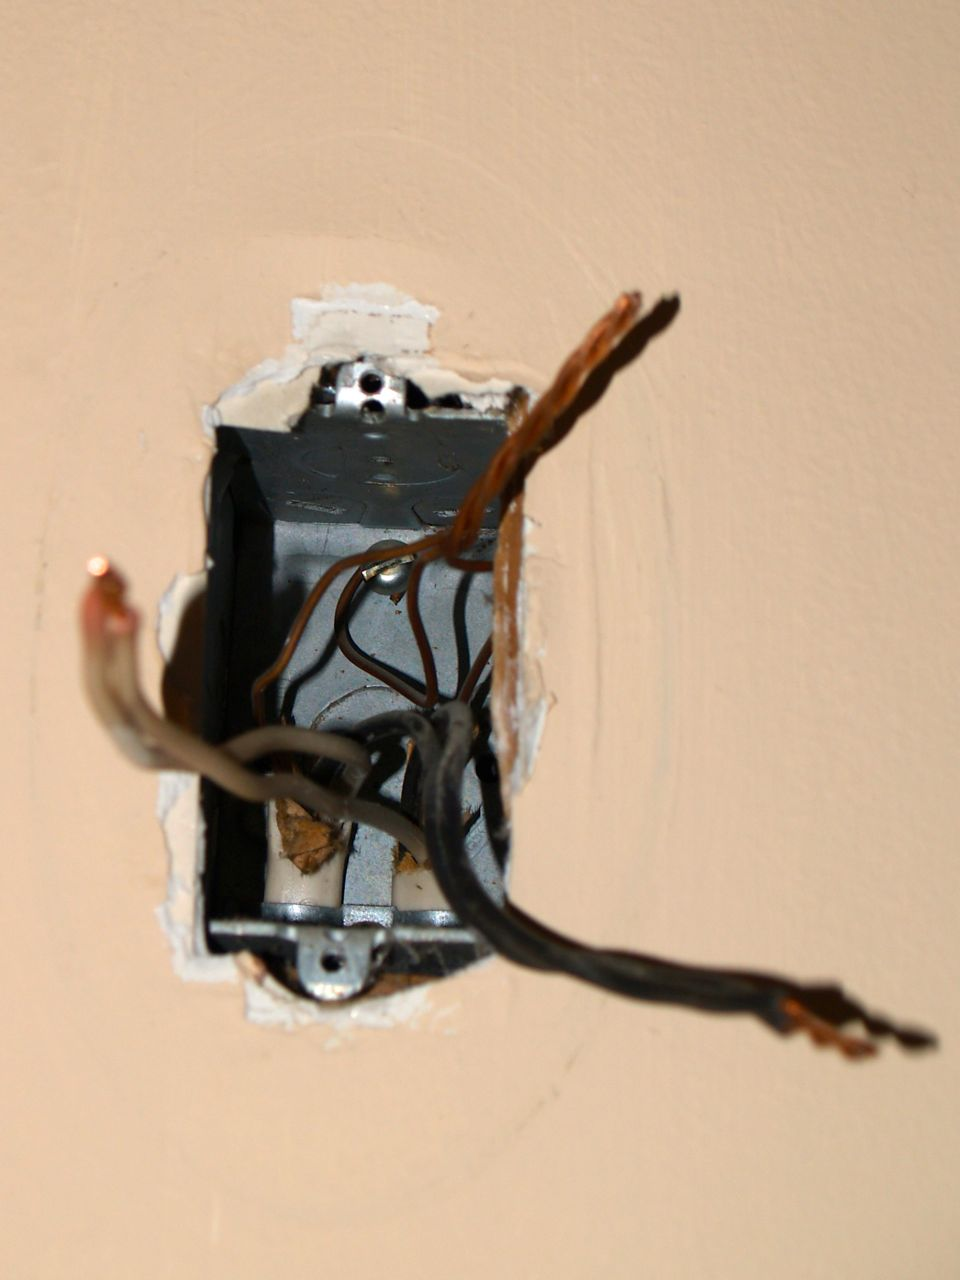 Changing A Lighting Fixture Geeky Girl Engineer Wiring Light And Outlet Here Is The New